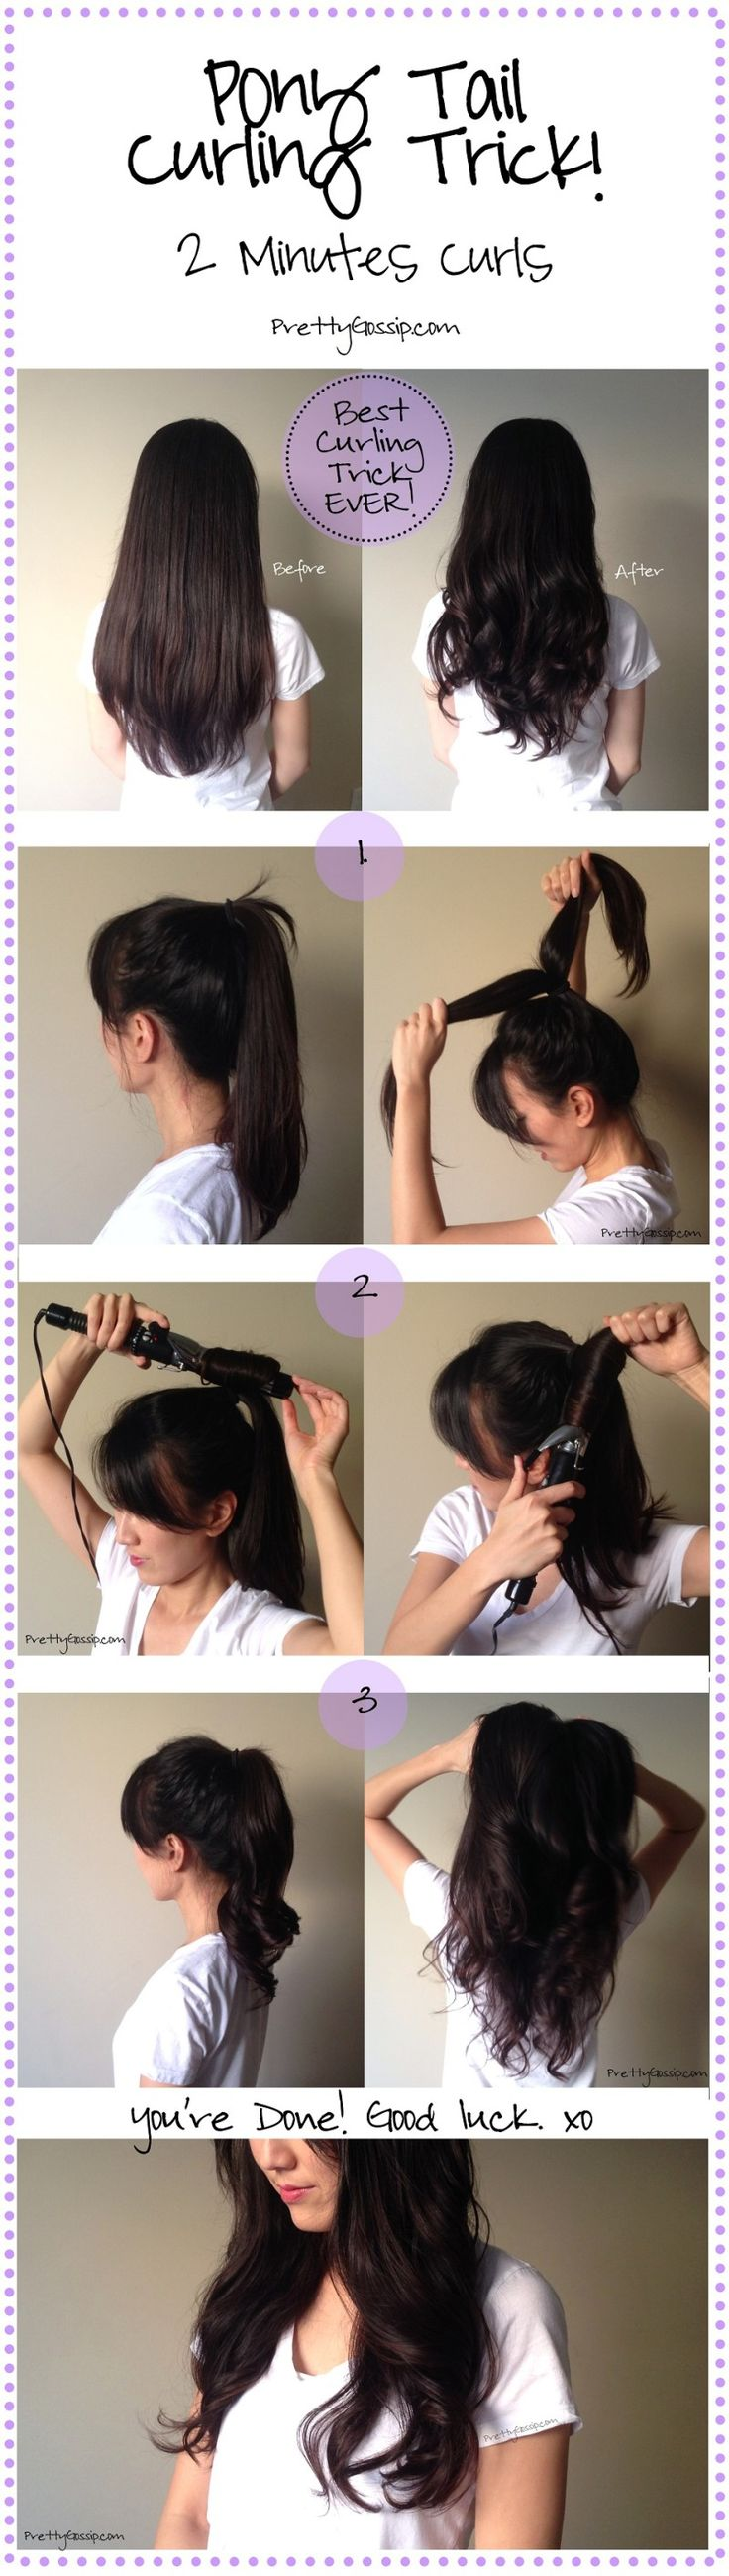 Pony Tail Curling Trick Tutorial by PrettyGossip